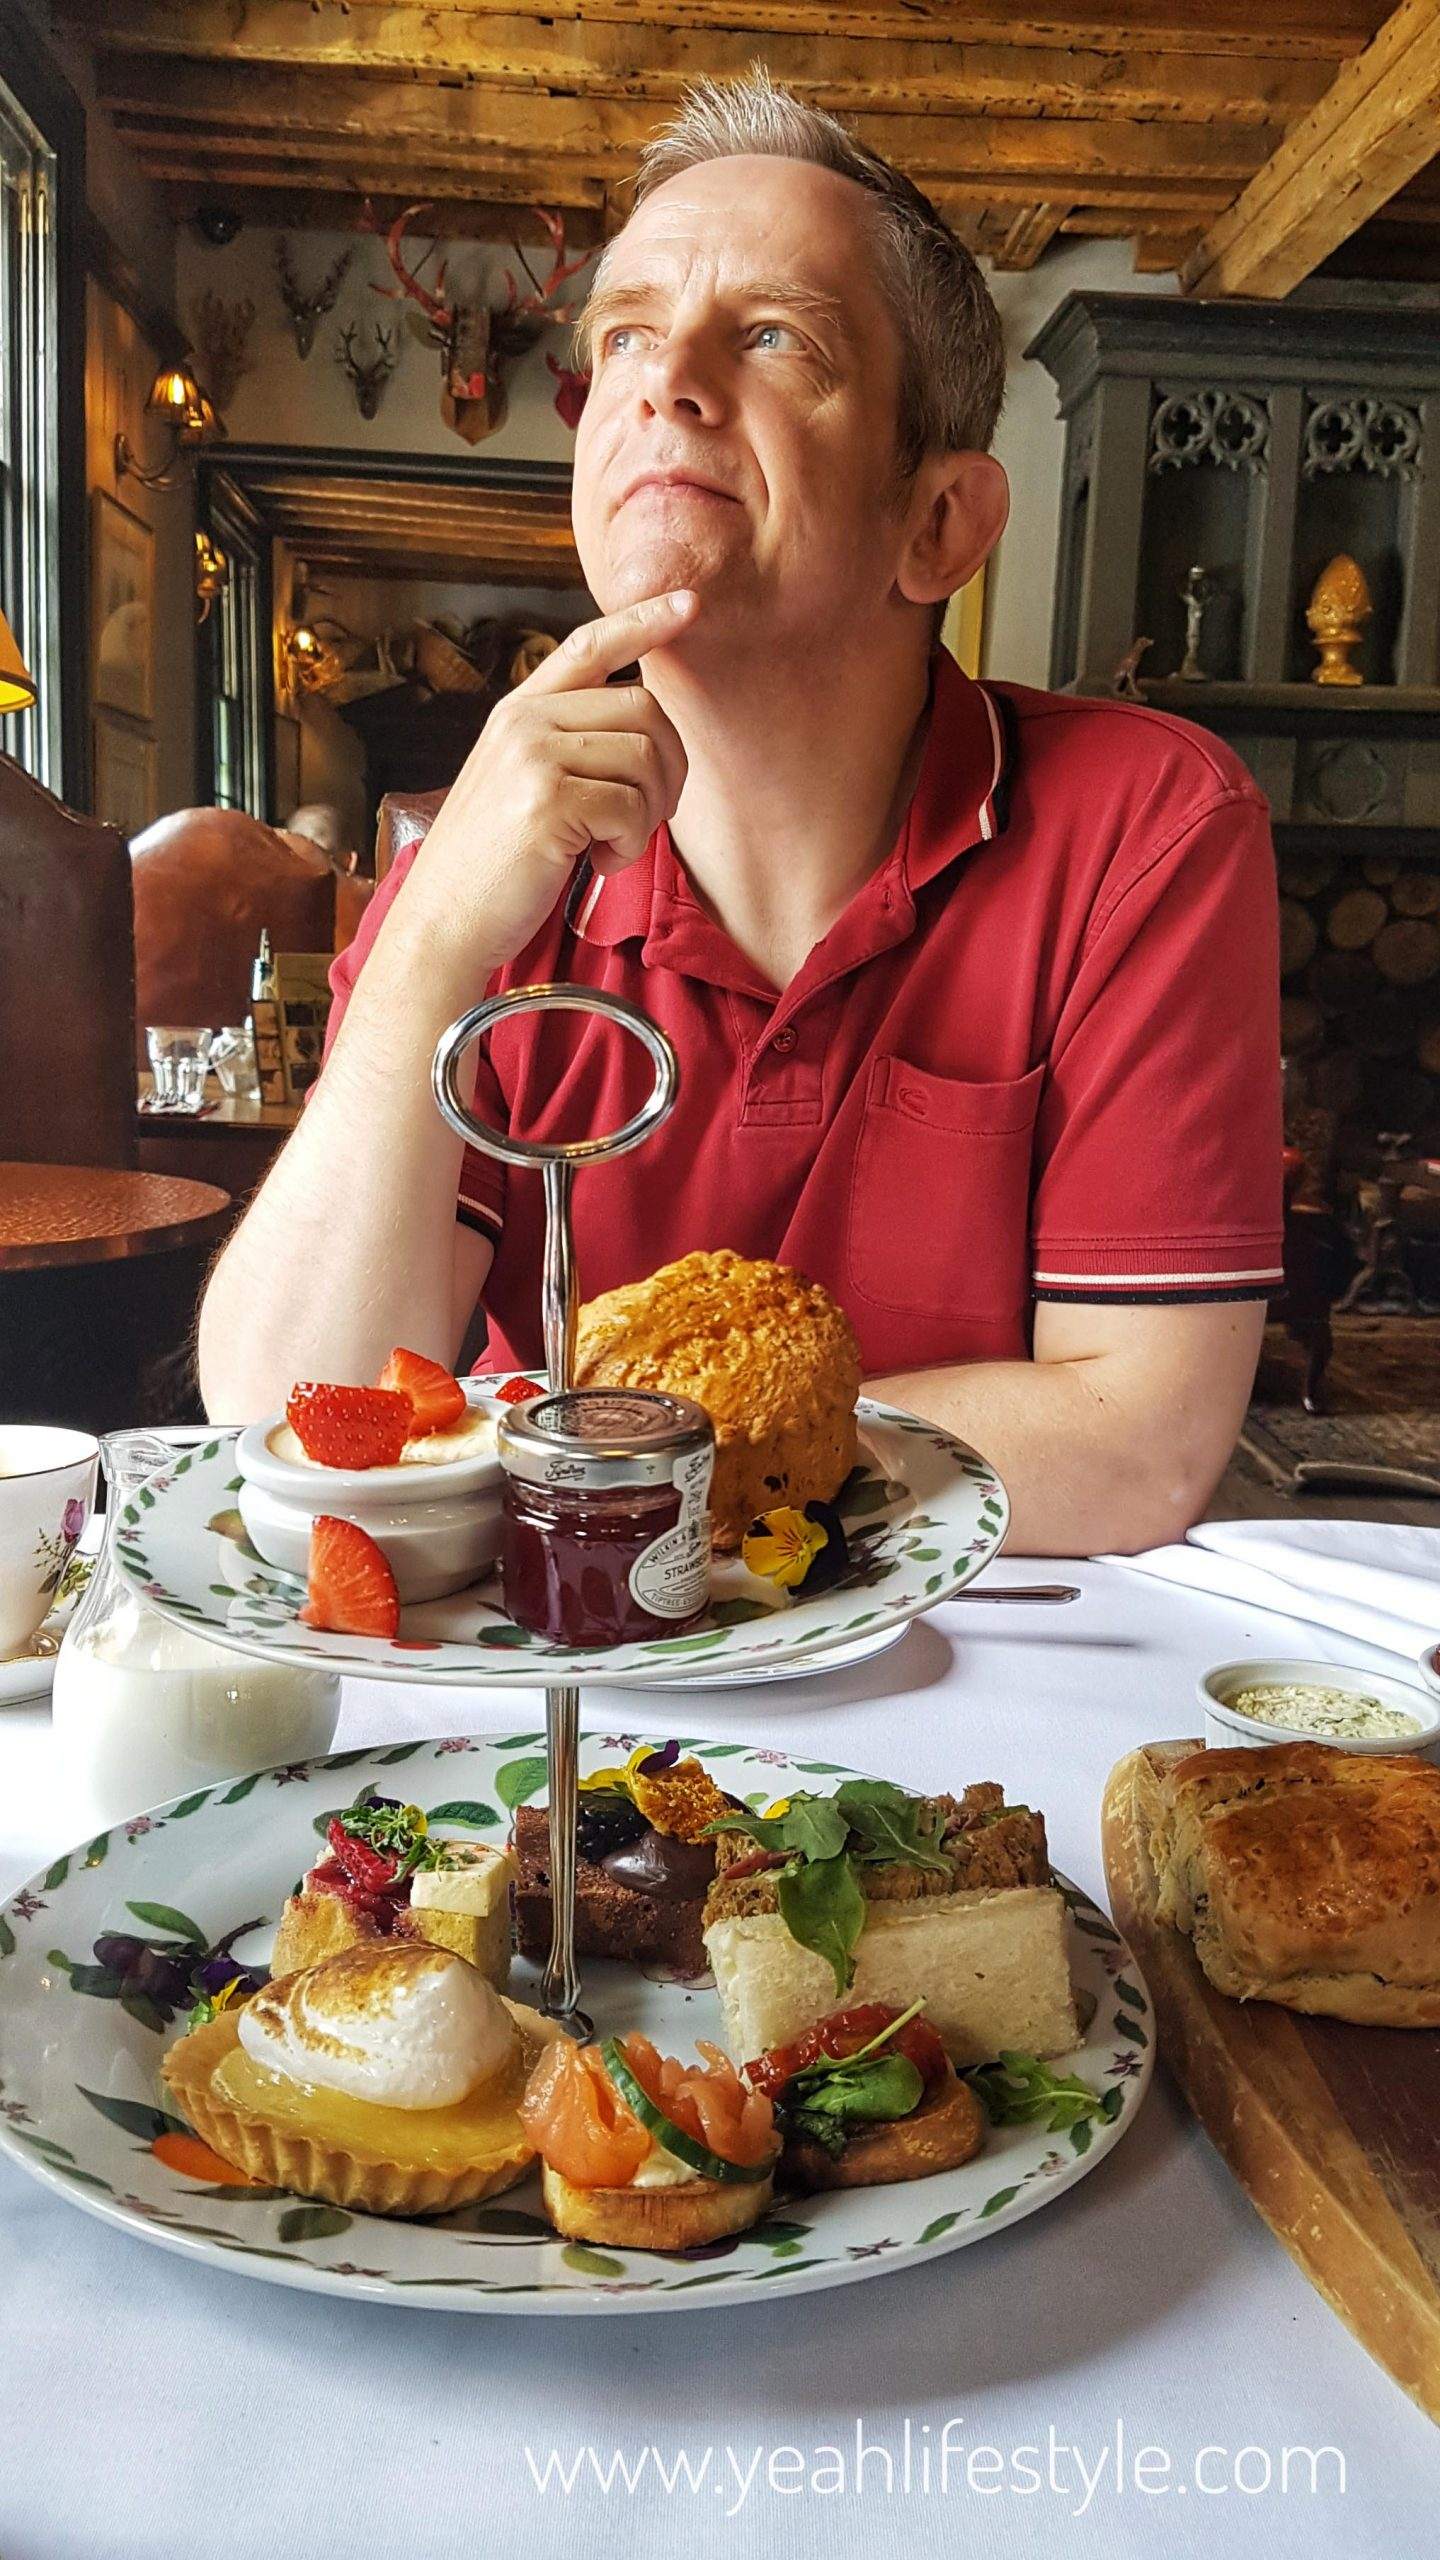 Afternoon-tea-vicerage-holmes-chappel-cheshire-food-blogger-fathers